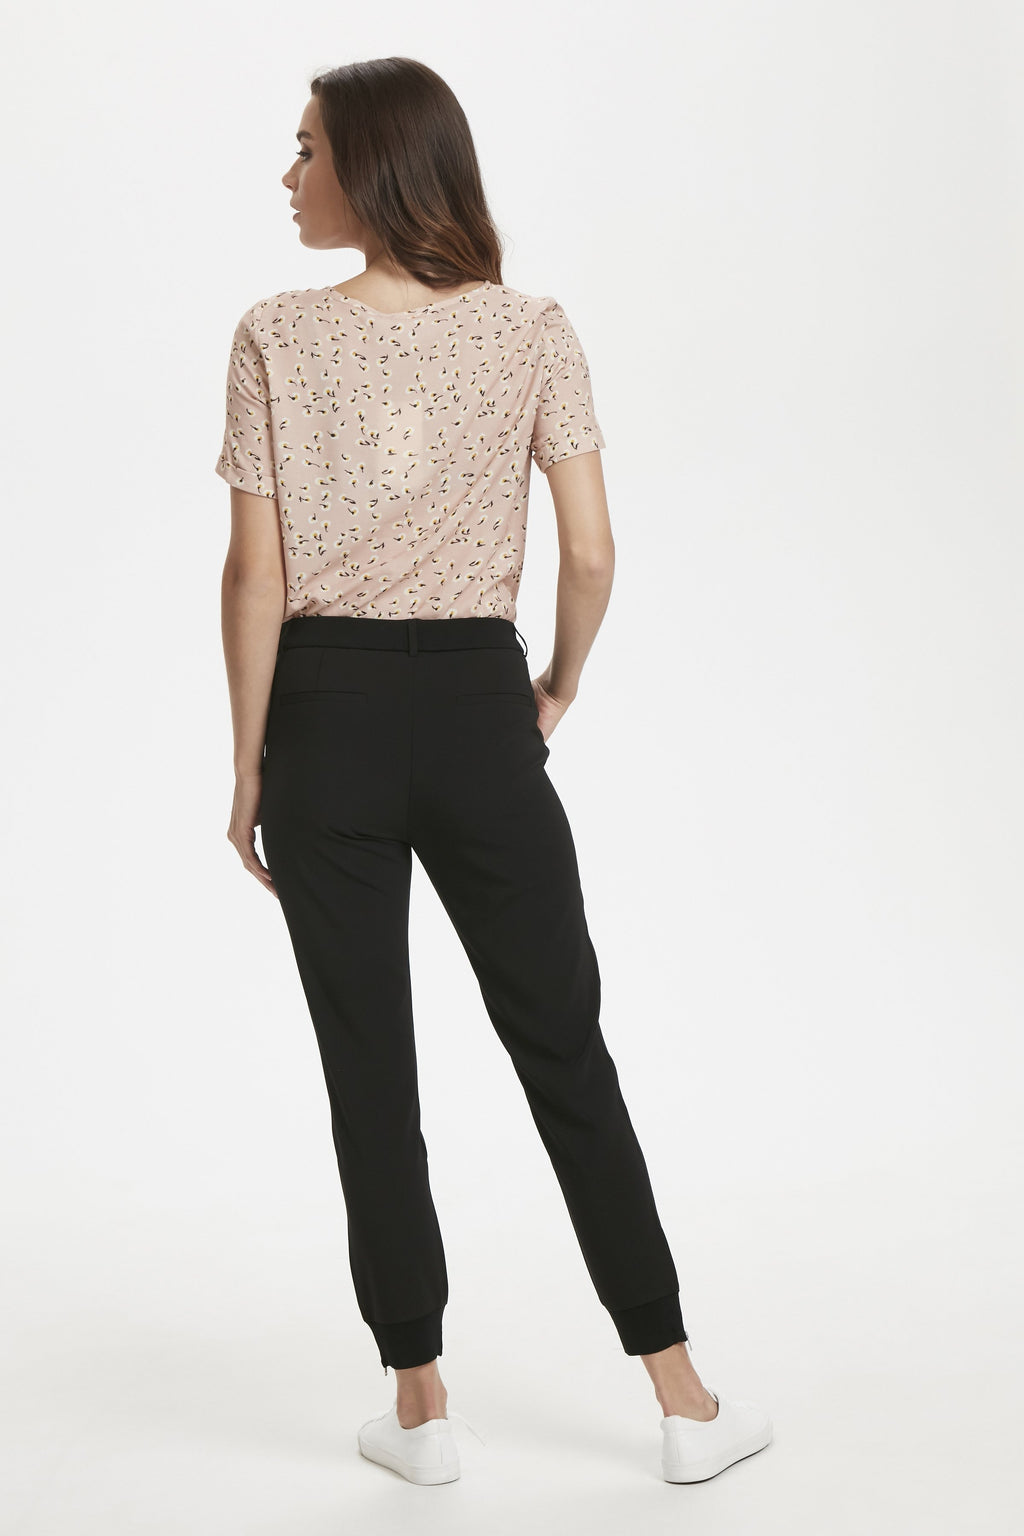 In Wear Nica Pant Trousers - Black